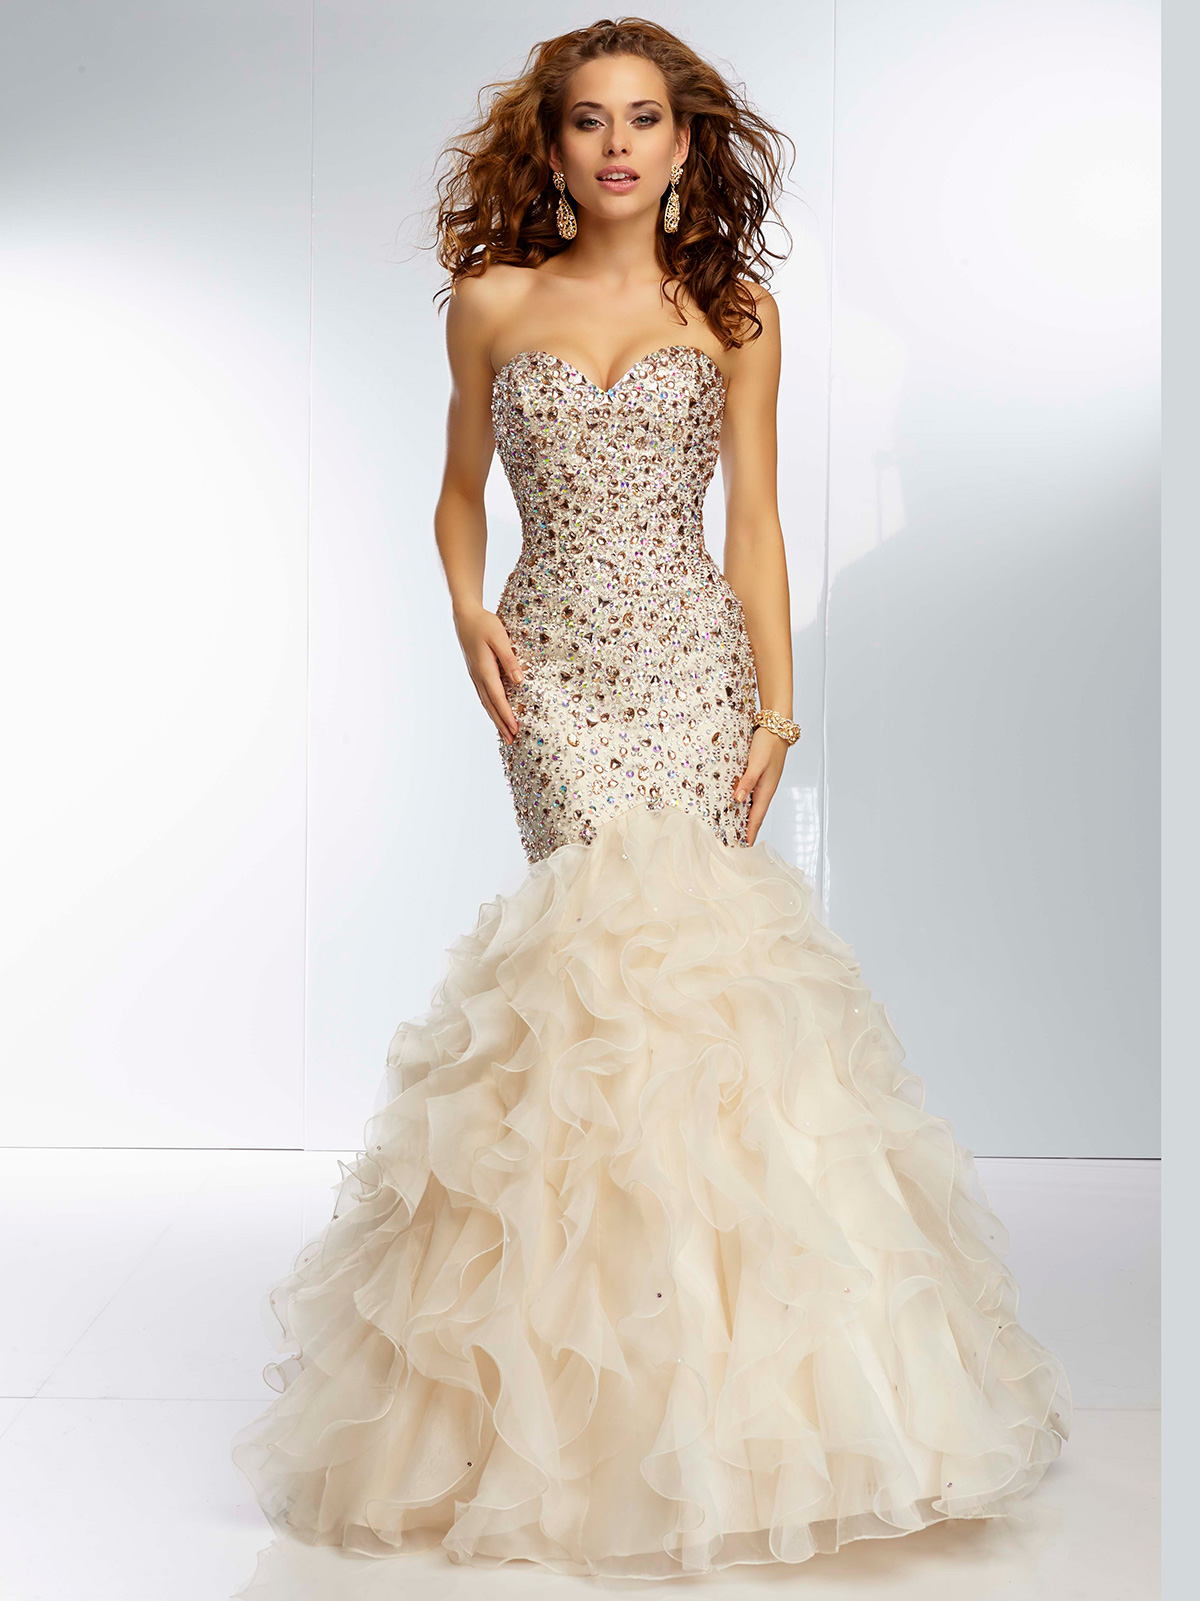 Homecoming dresses king of prussia mall discount wedding for Wedding dresses king of prussia